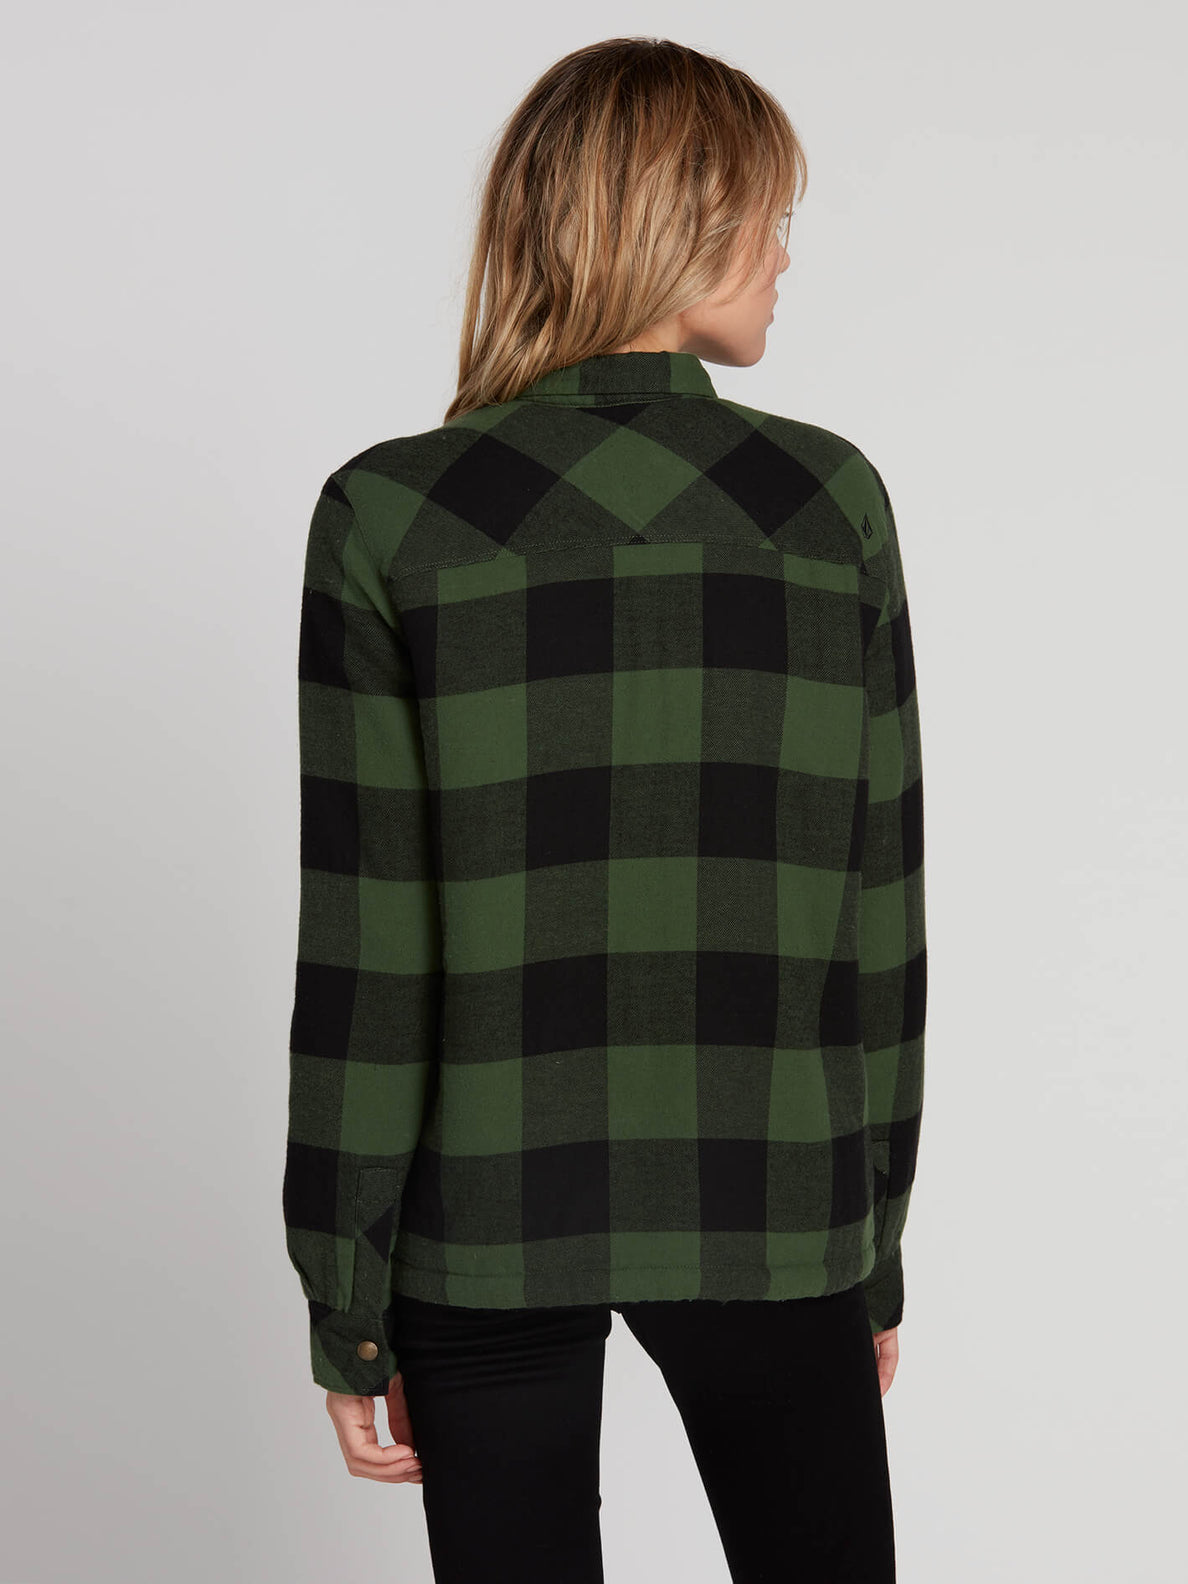 Plaid About You Long Sleeve - Green (B0531812_GRN) [B]